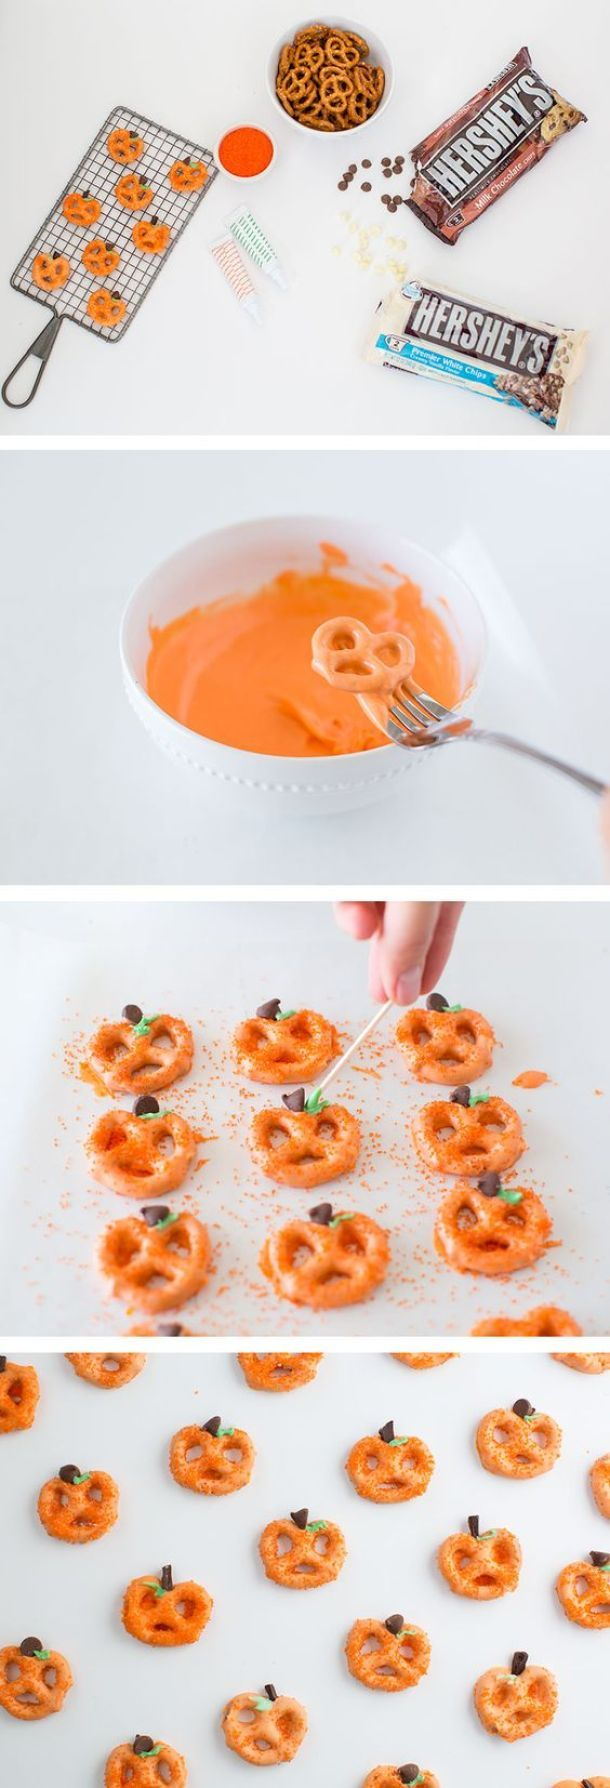 Halloween Party Treats Appetizers and Desserts Recipes - Chocolate Covered Pretzel Pumpkins Recipe via i heart naptime